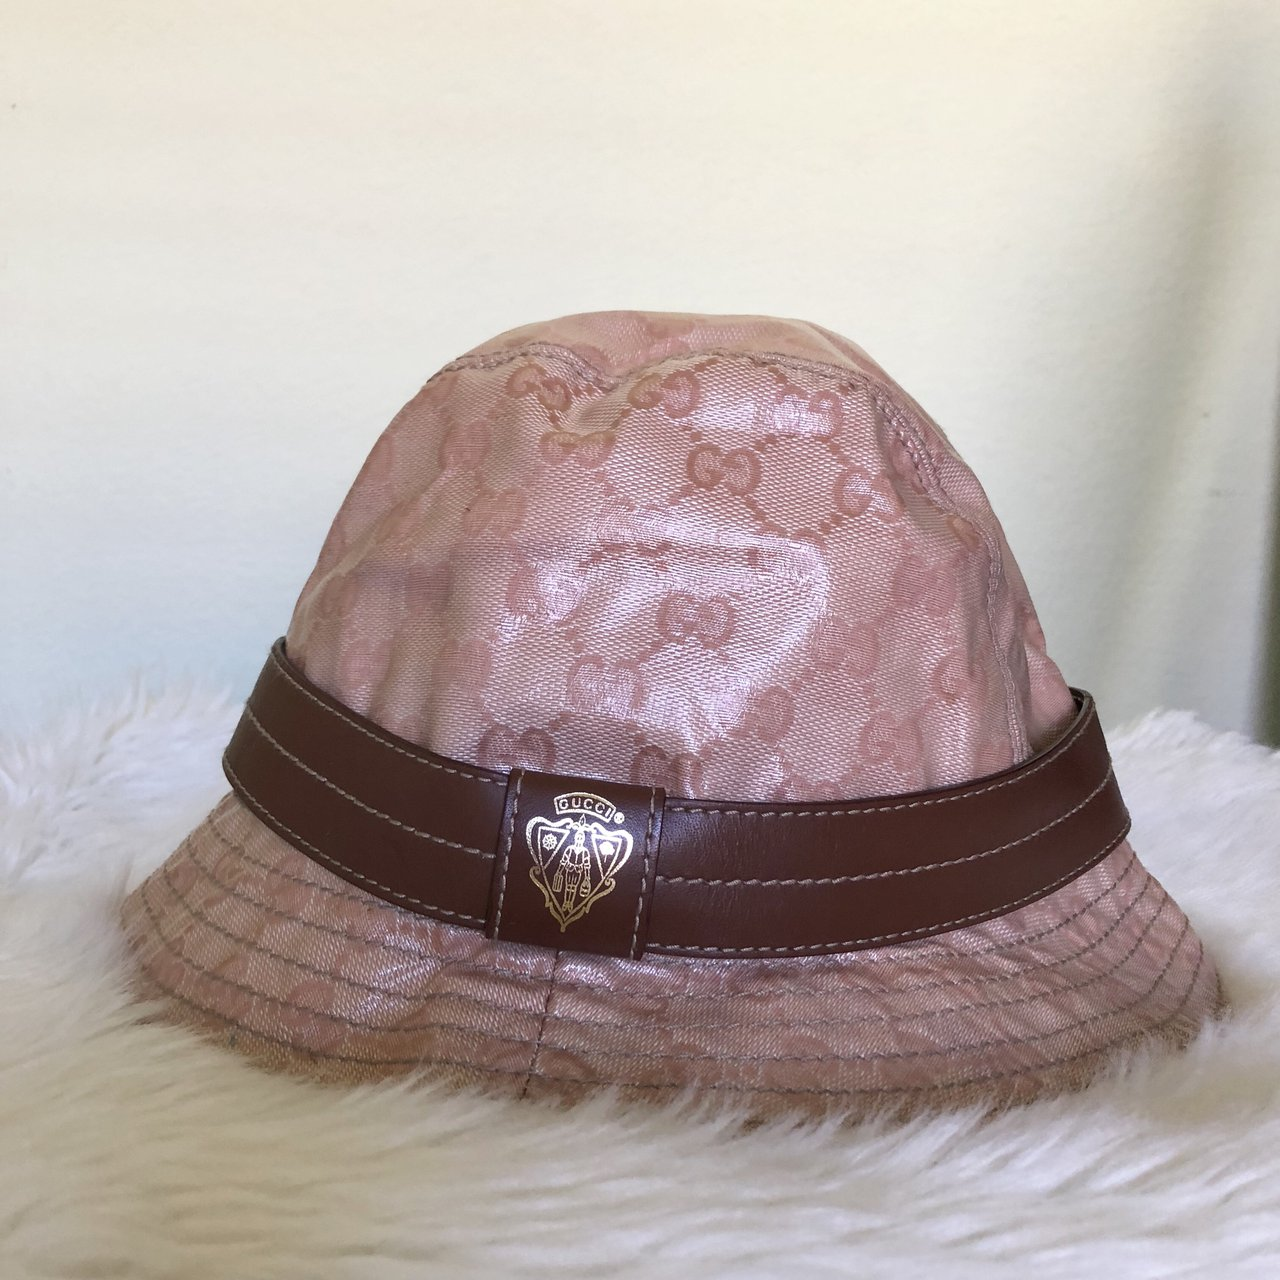 authentic vintage crystal Gucci bucket hat in a beautiful 😩 - Depop 236f2636a9b